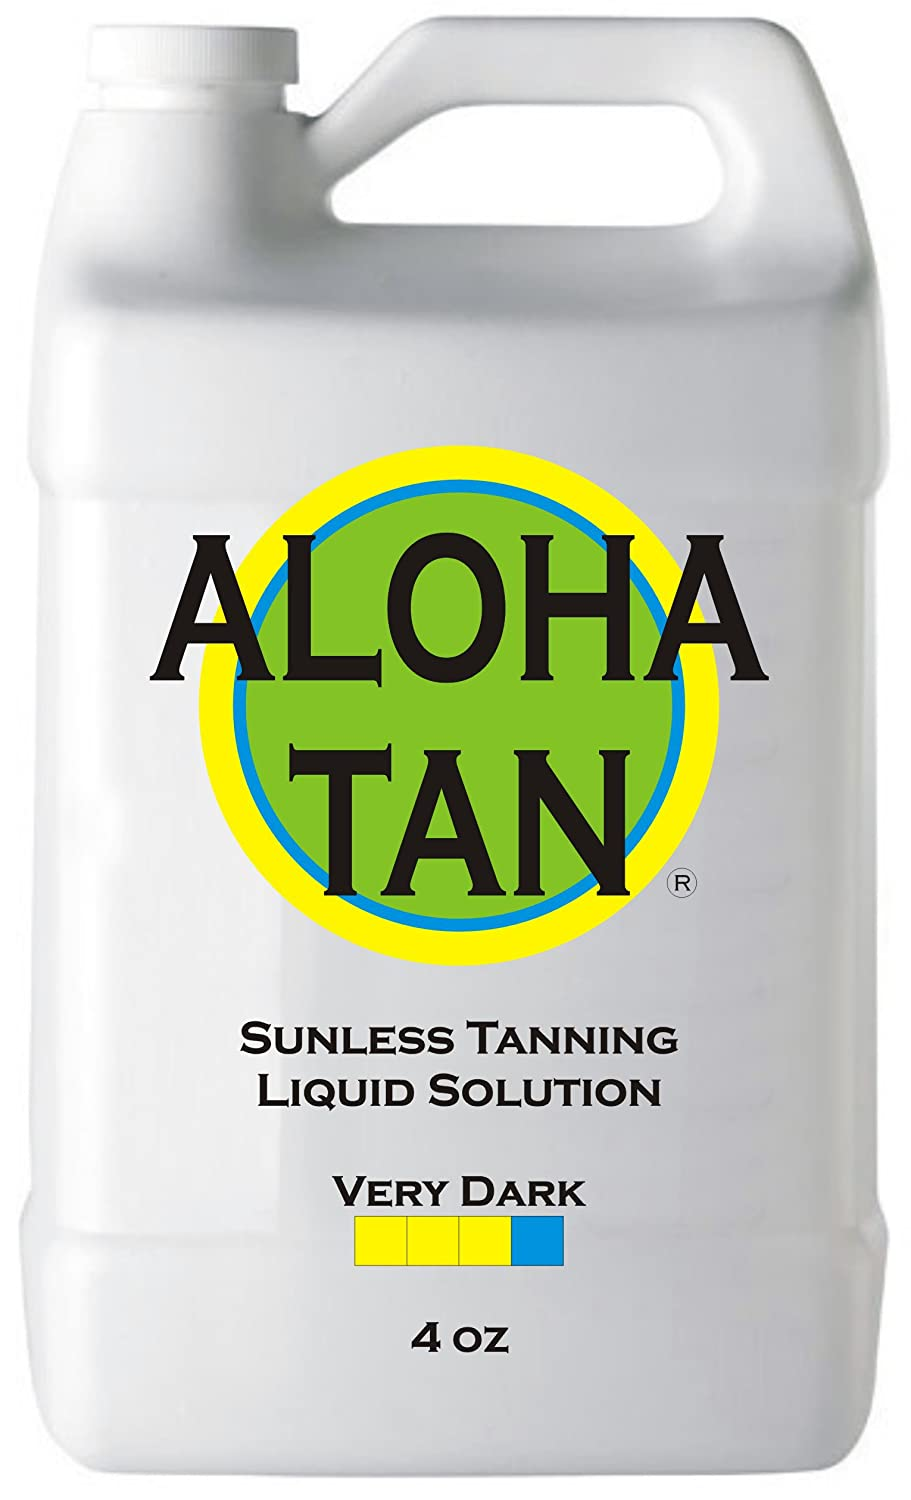 ALOHA TAN - VERY DARK - Spray Tan Solution - 4 oz - Sunless Self Tanning Liquid for Airbrush or HVLP System - INCLUDES: Applicator Mitt, Application Gloves and Best Fake Tanner Lotion Mousse Sample